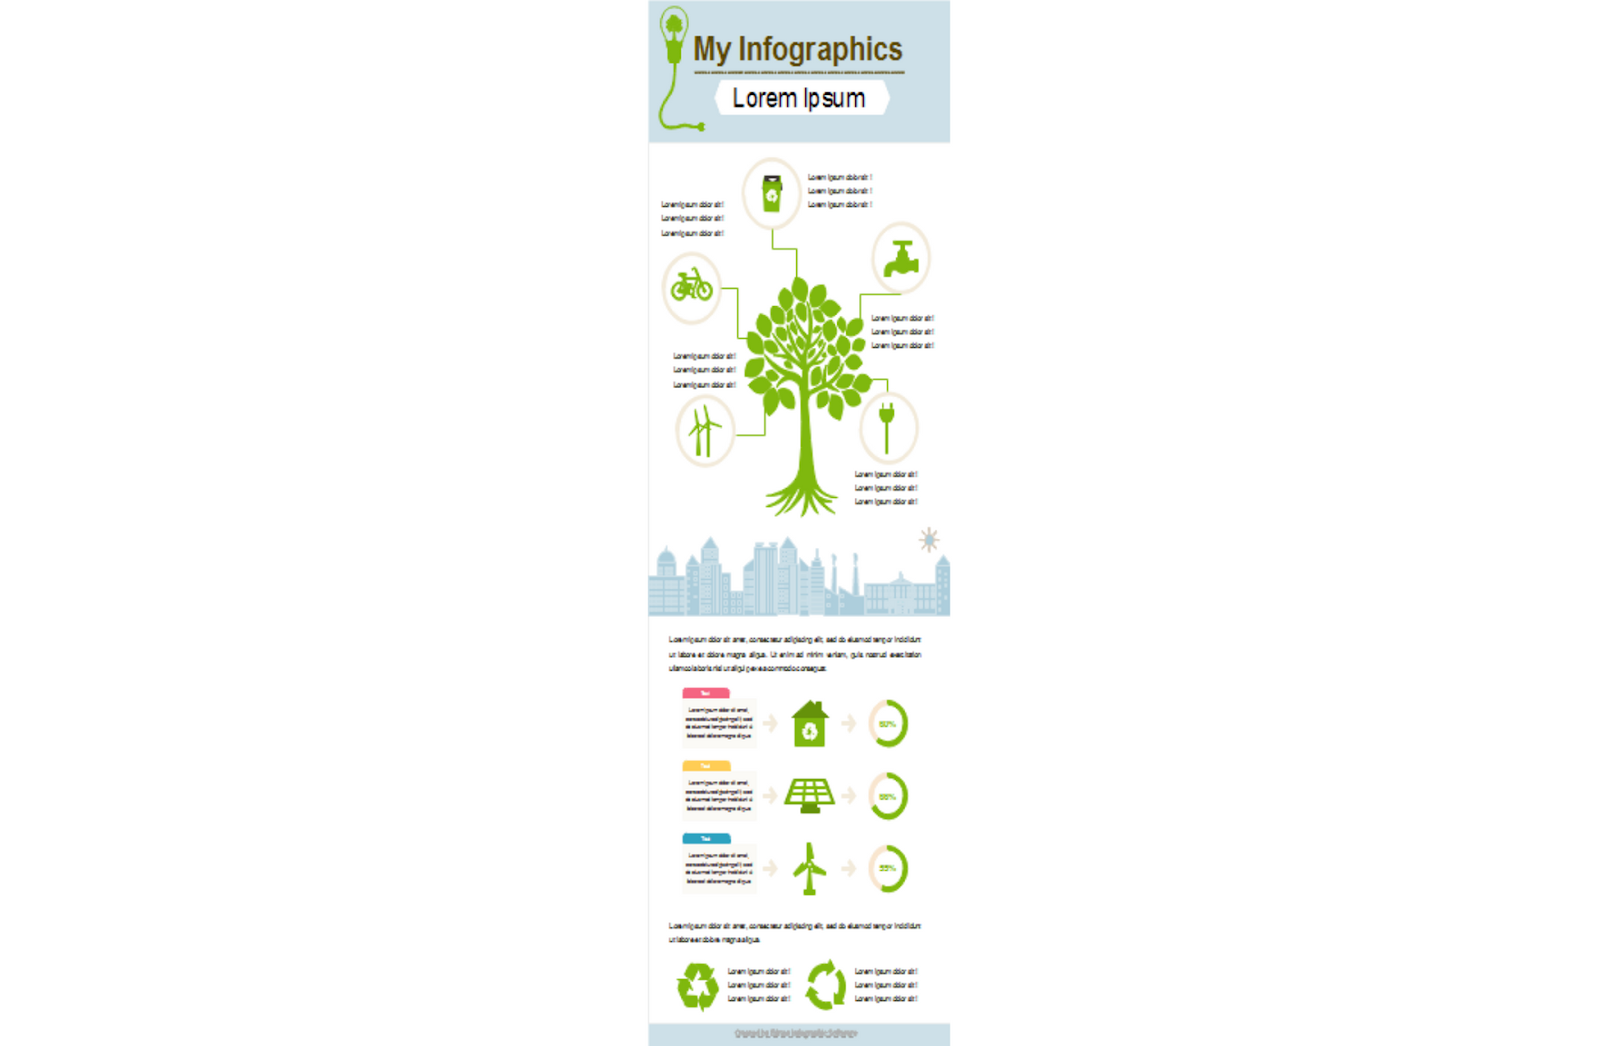 edrawsoft infographics about trees and recycling